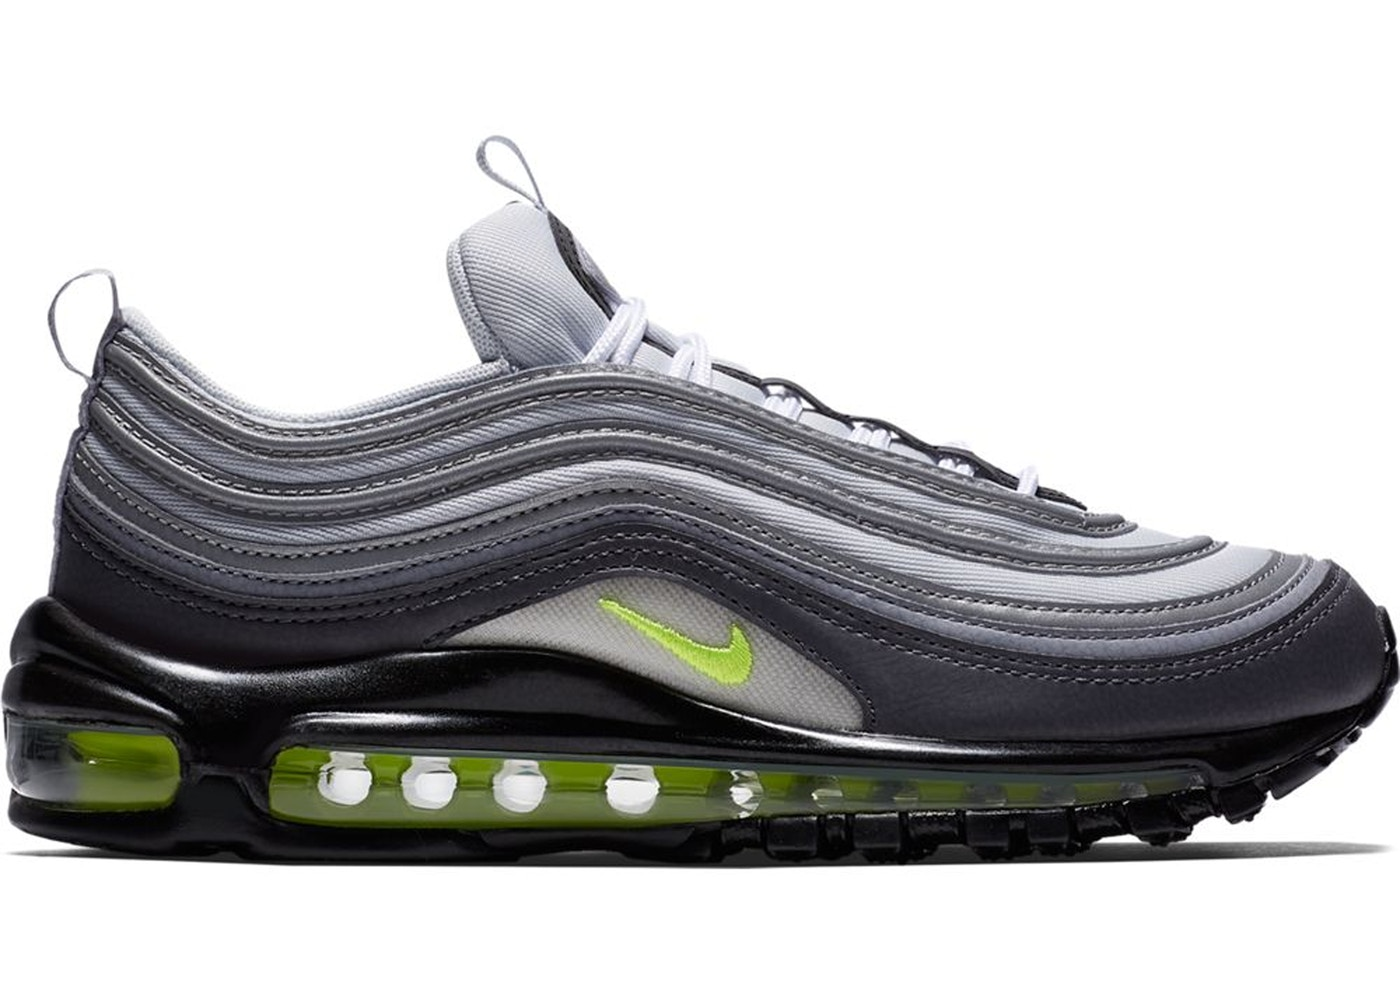 innovative design 8021d beb3e Air Max 97 Neon (W) - 921733-003